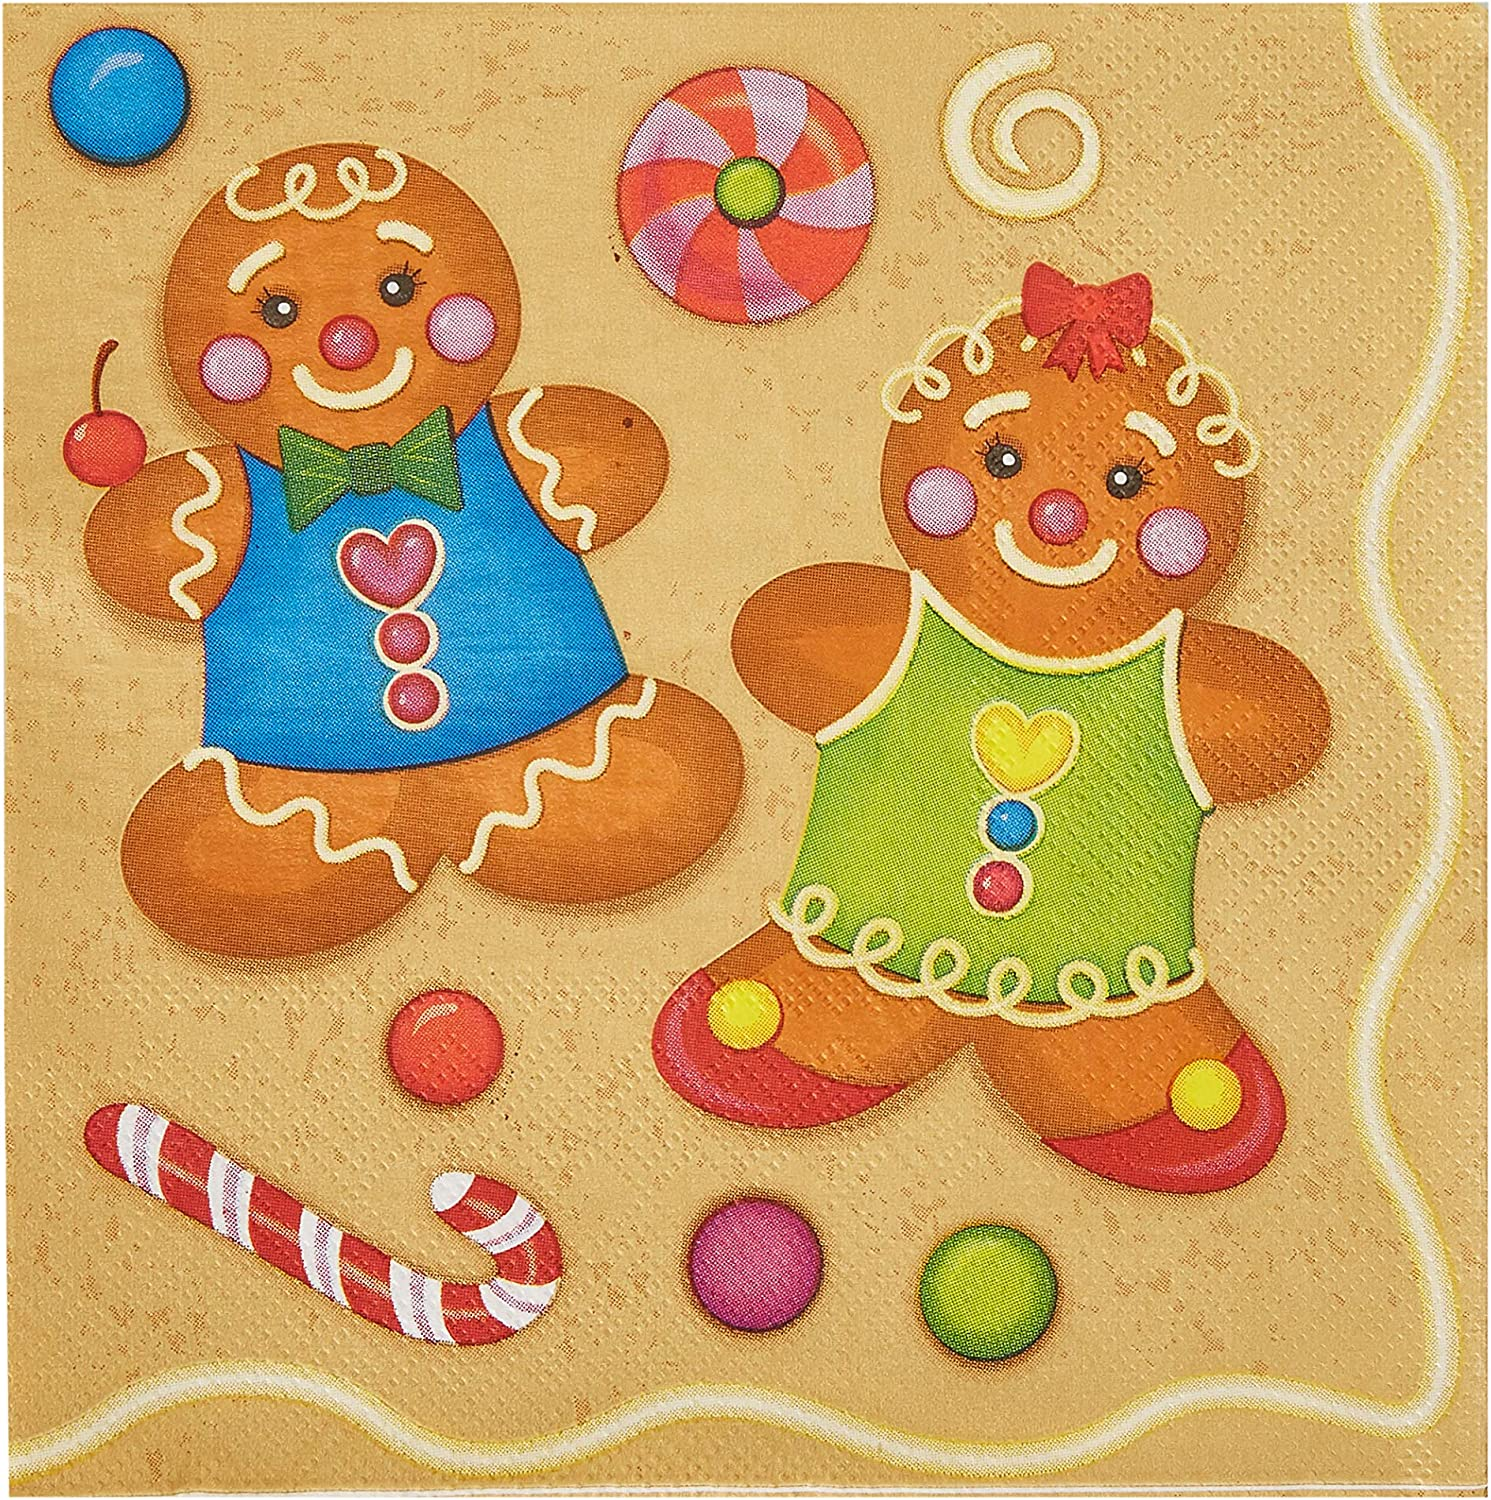 Cocktail Napkins - 100-Pack Disposable Paper Napkins  Christmas Holidays Dinner Party Supplies  2-Ply  Cute Boy and Girl Gingerbread Cookie Design  Unfolded 13 x 13 Inches  Folded 6 5 x 6 5 Inches